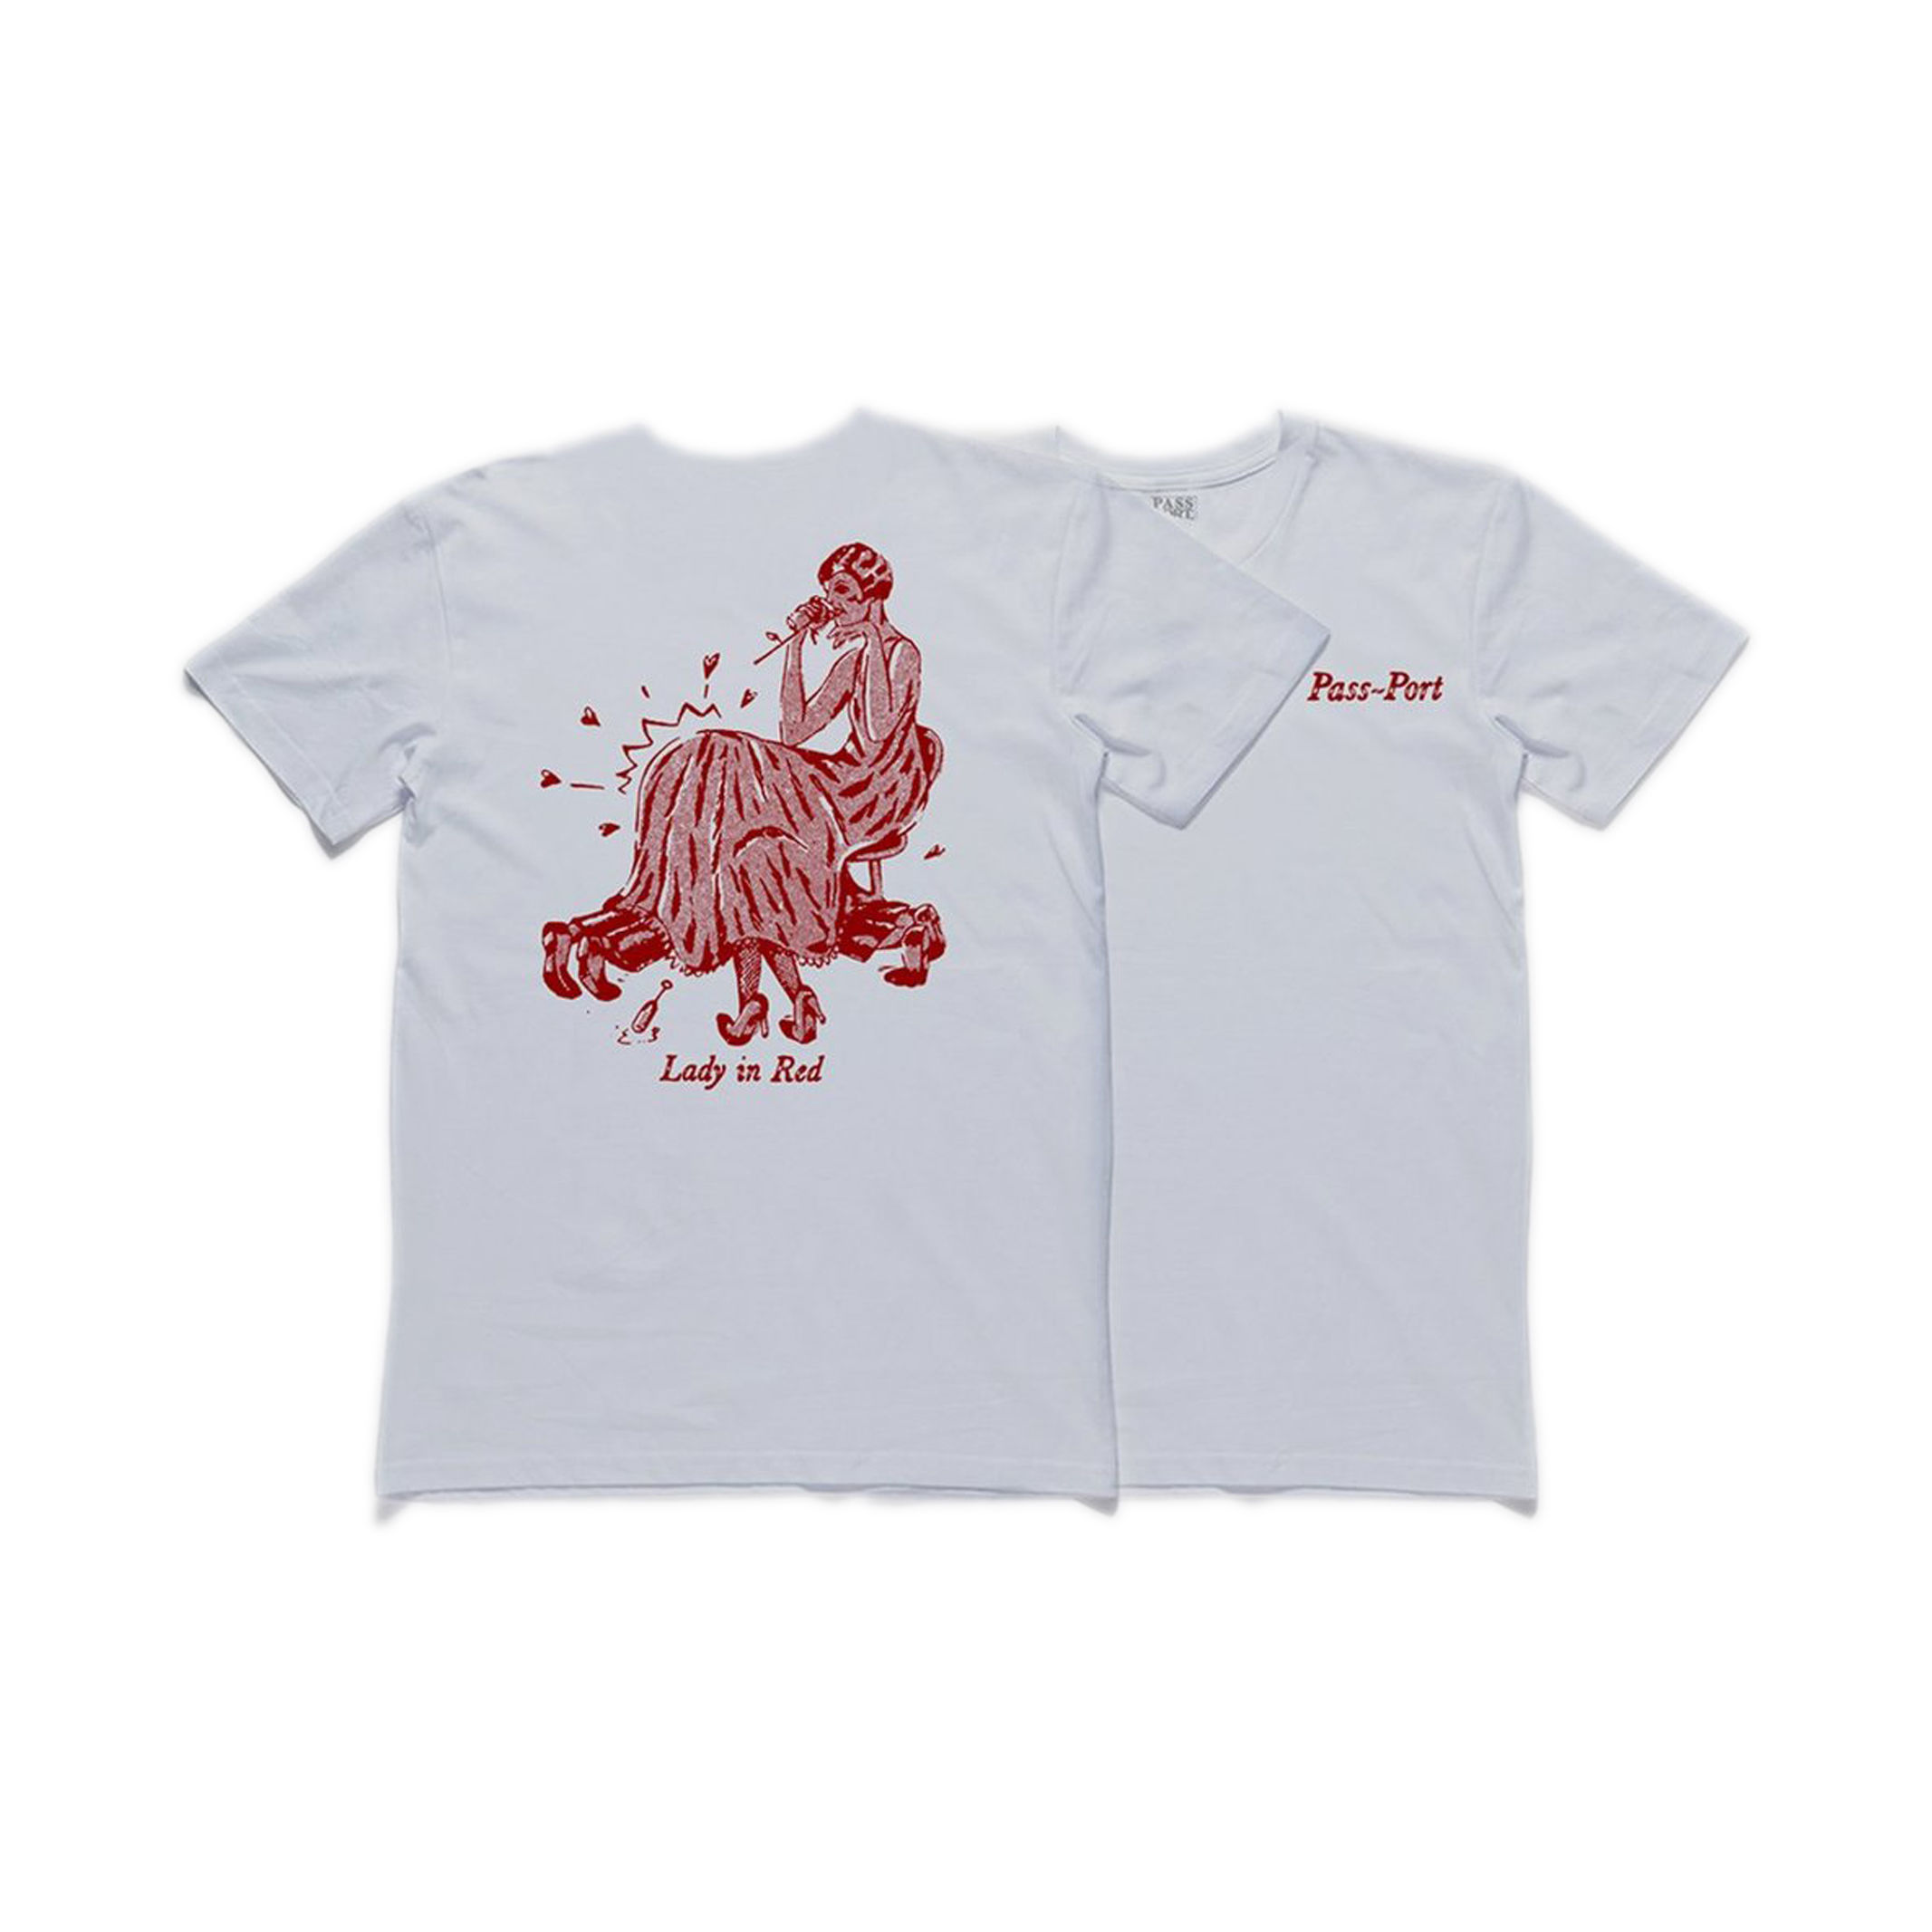 """PASS~PORT【 パスポート】""""LADY IN RED"""" TEE WHITE Tシャツ ホワイト"""